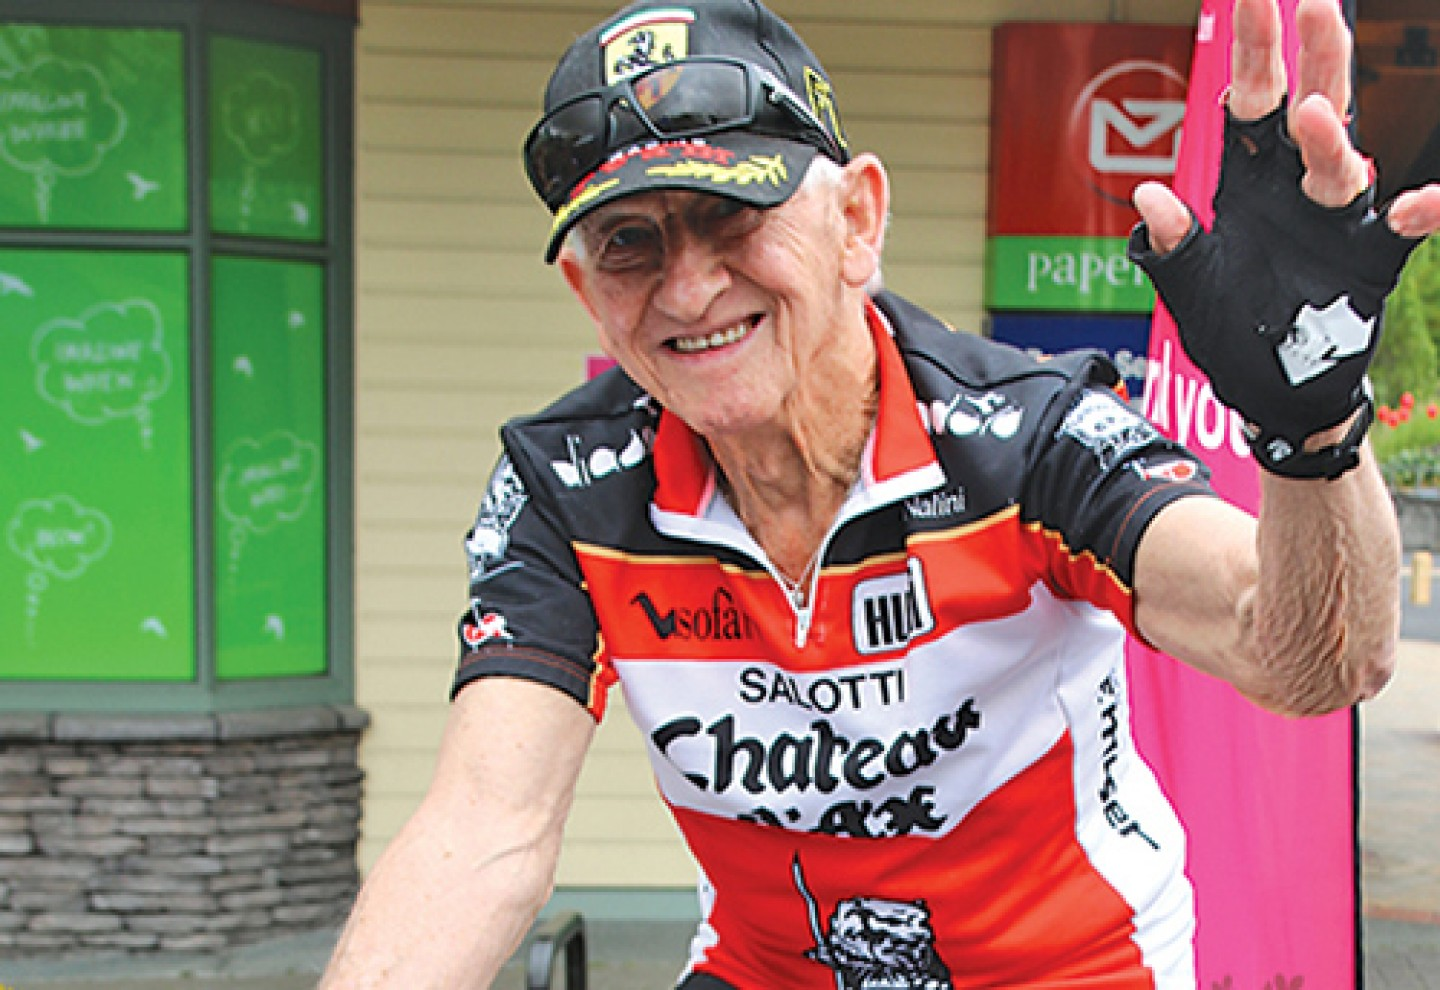 Jim Sonerson's Hospice Big Ride blog